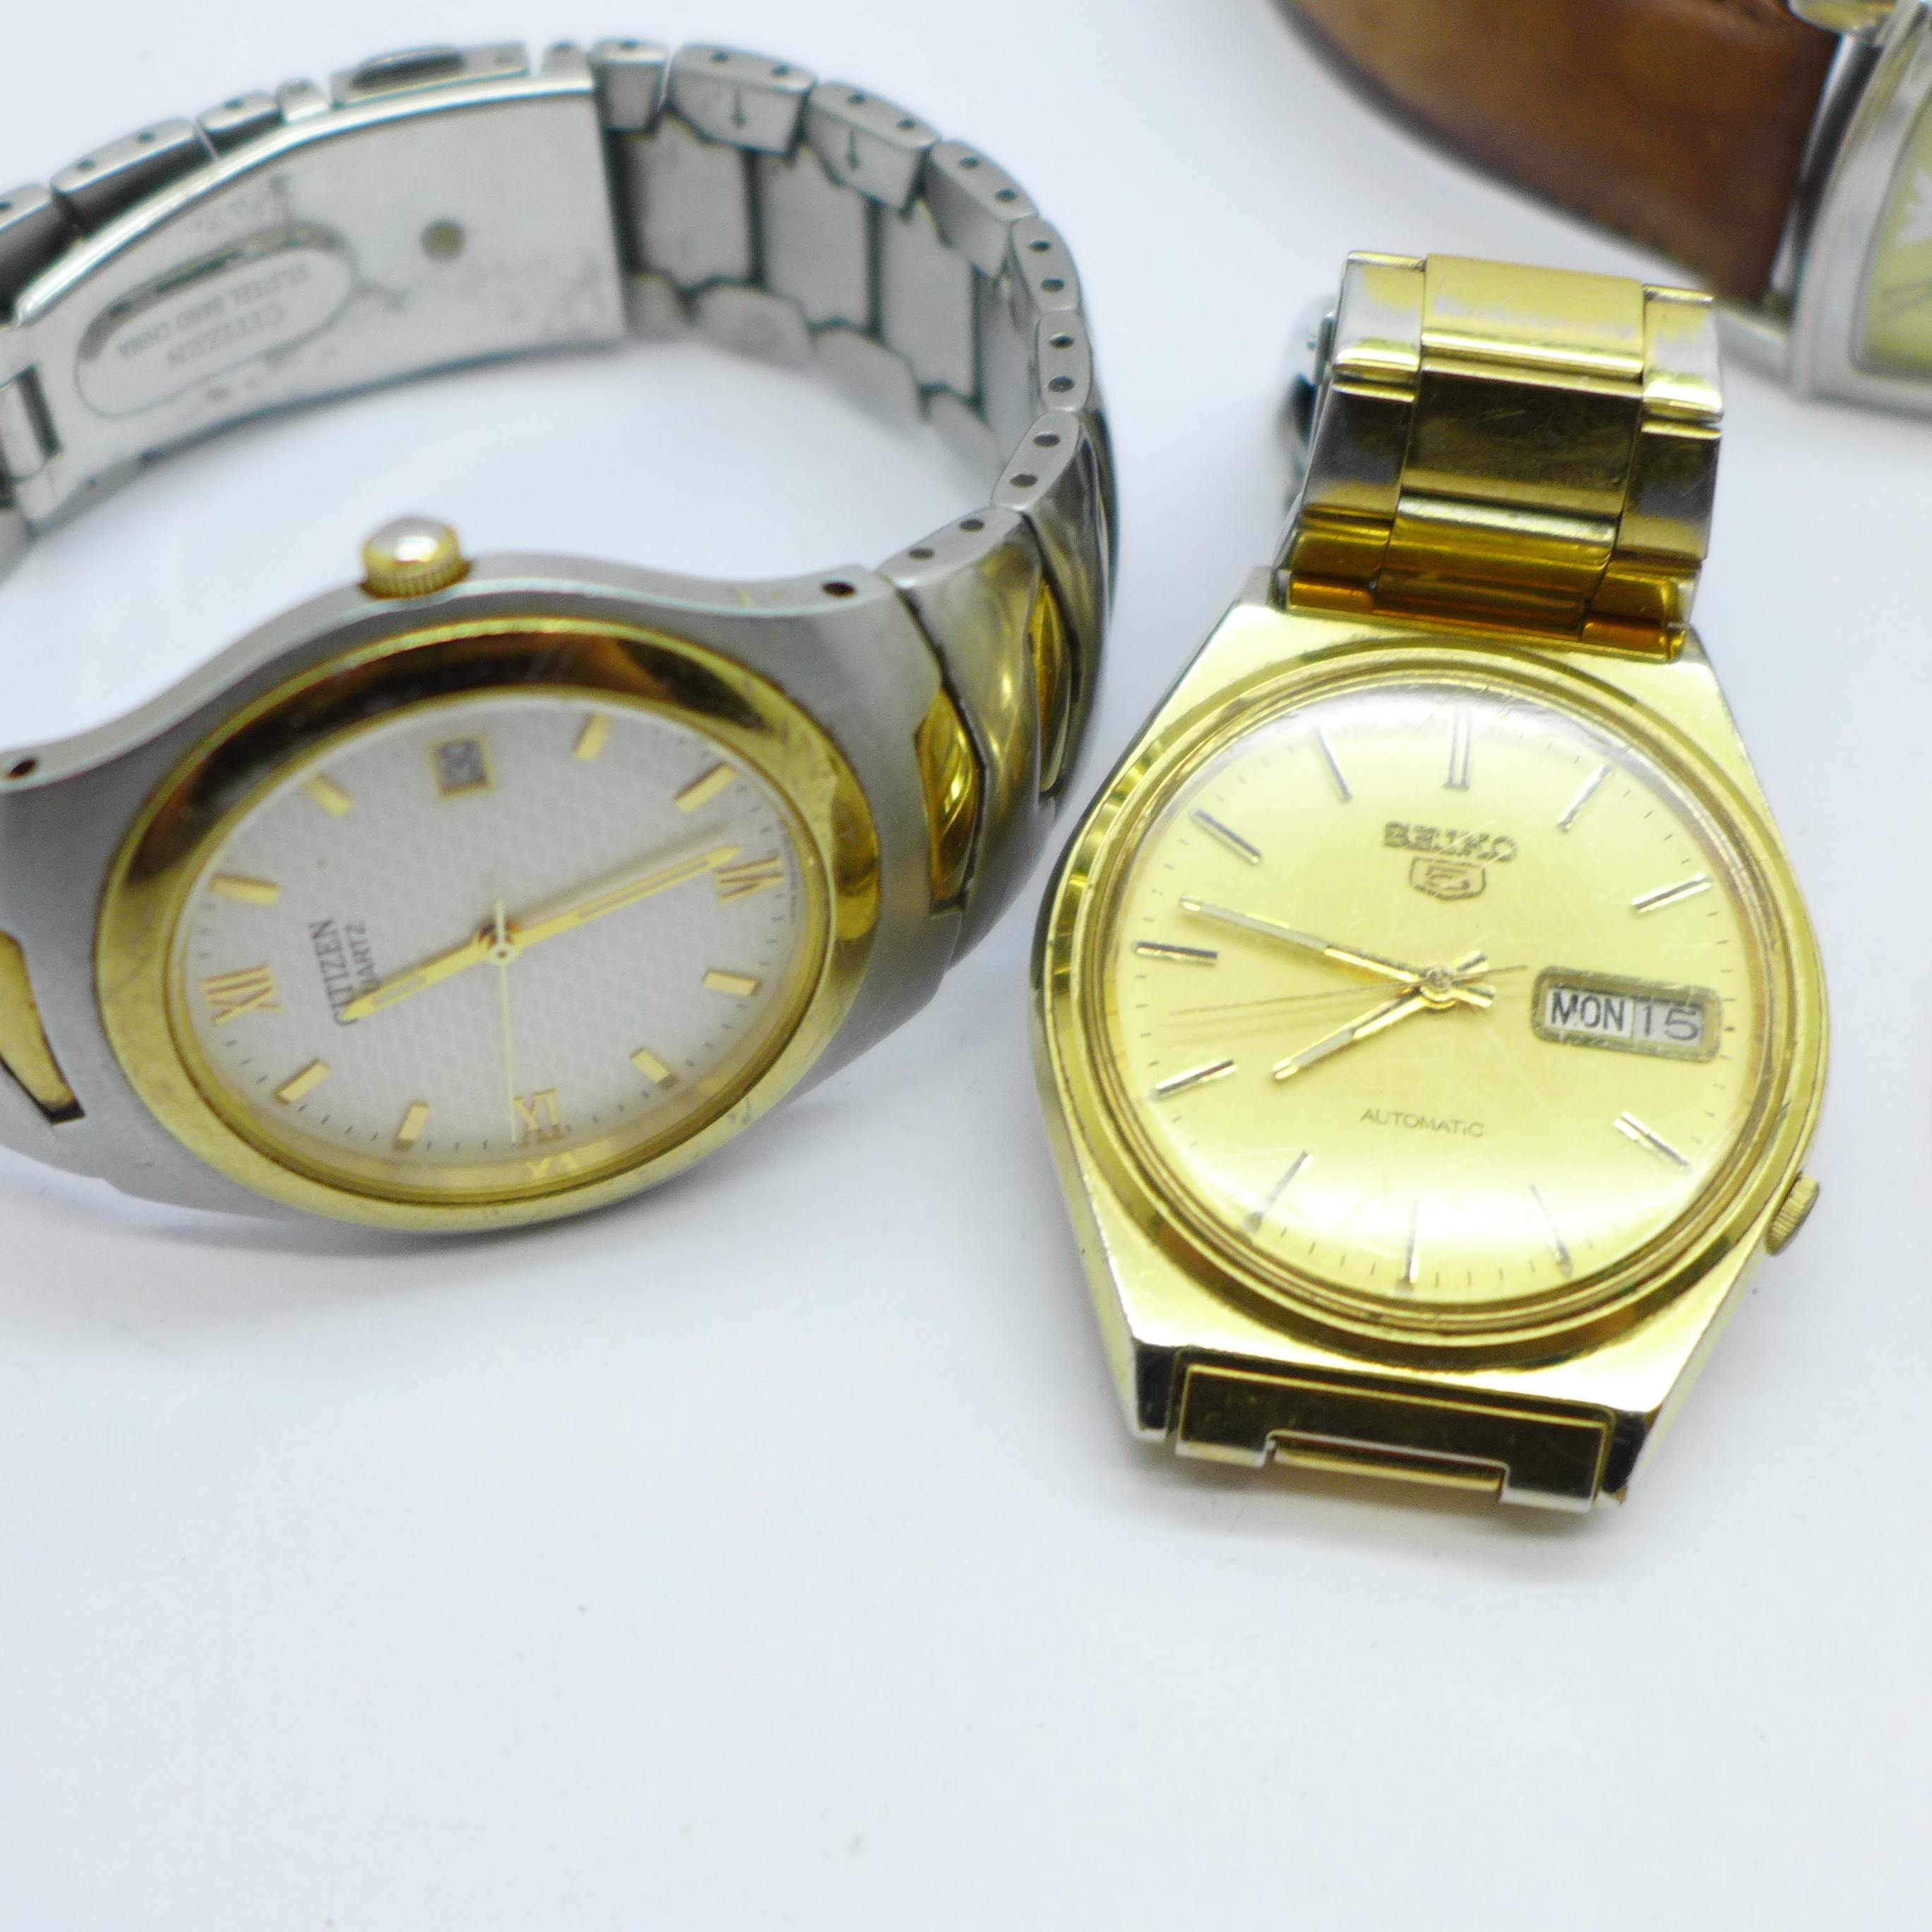 A collection of watches and a pocket watch including Seiko, Avia, Citizen, Emporio Armani and Smiths - Image 4 of 5